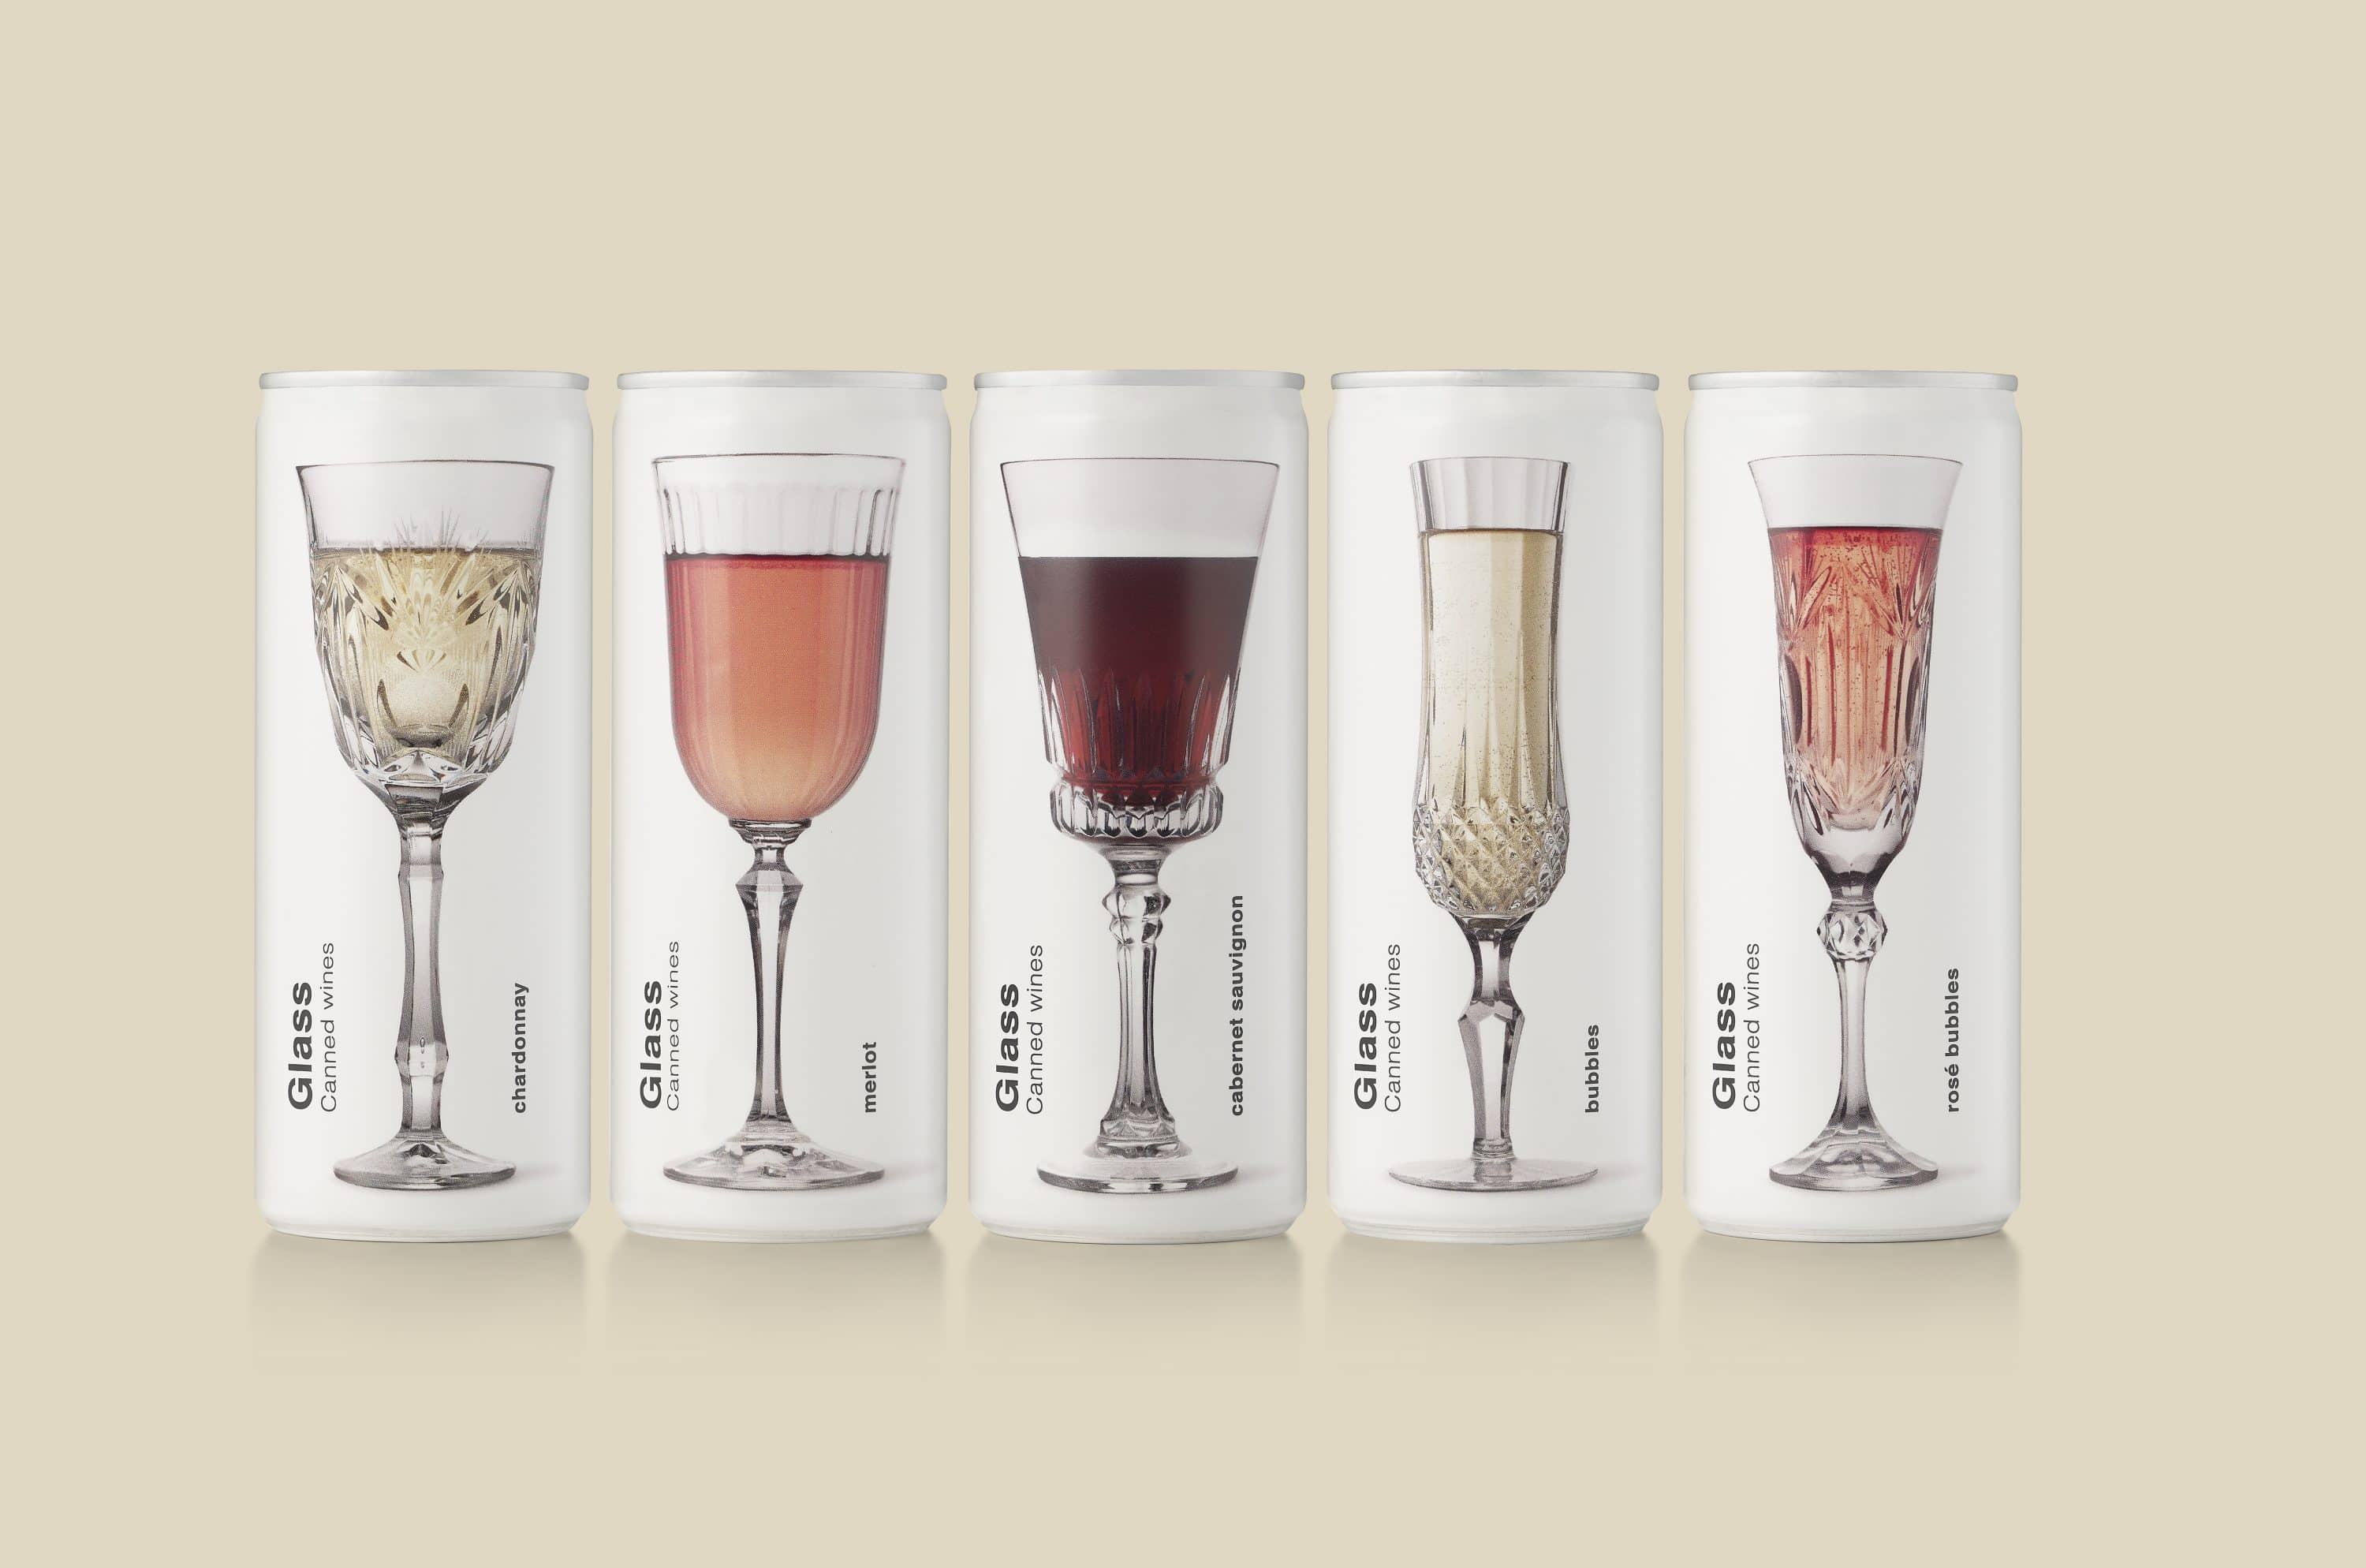 Glass canned wines